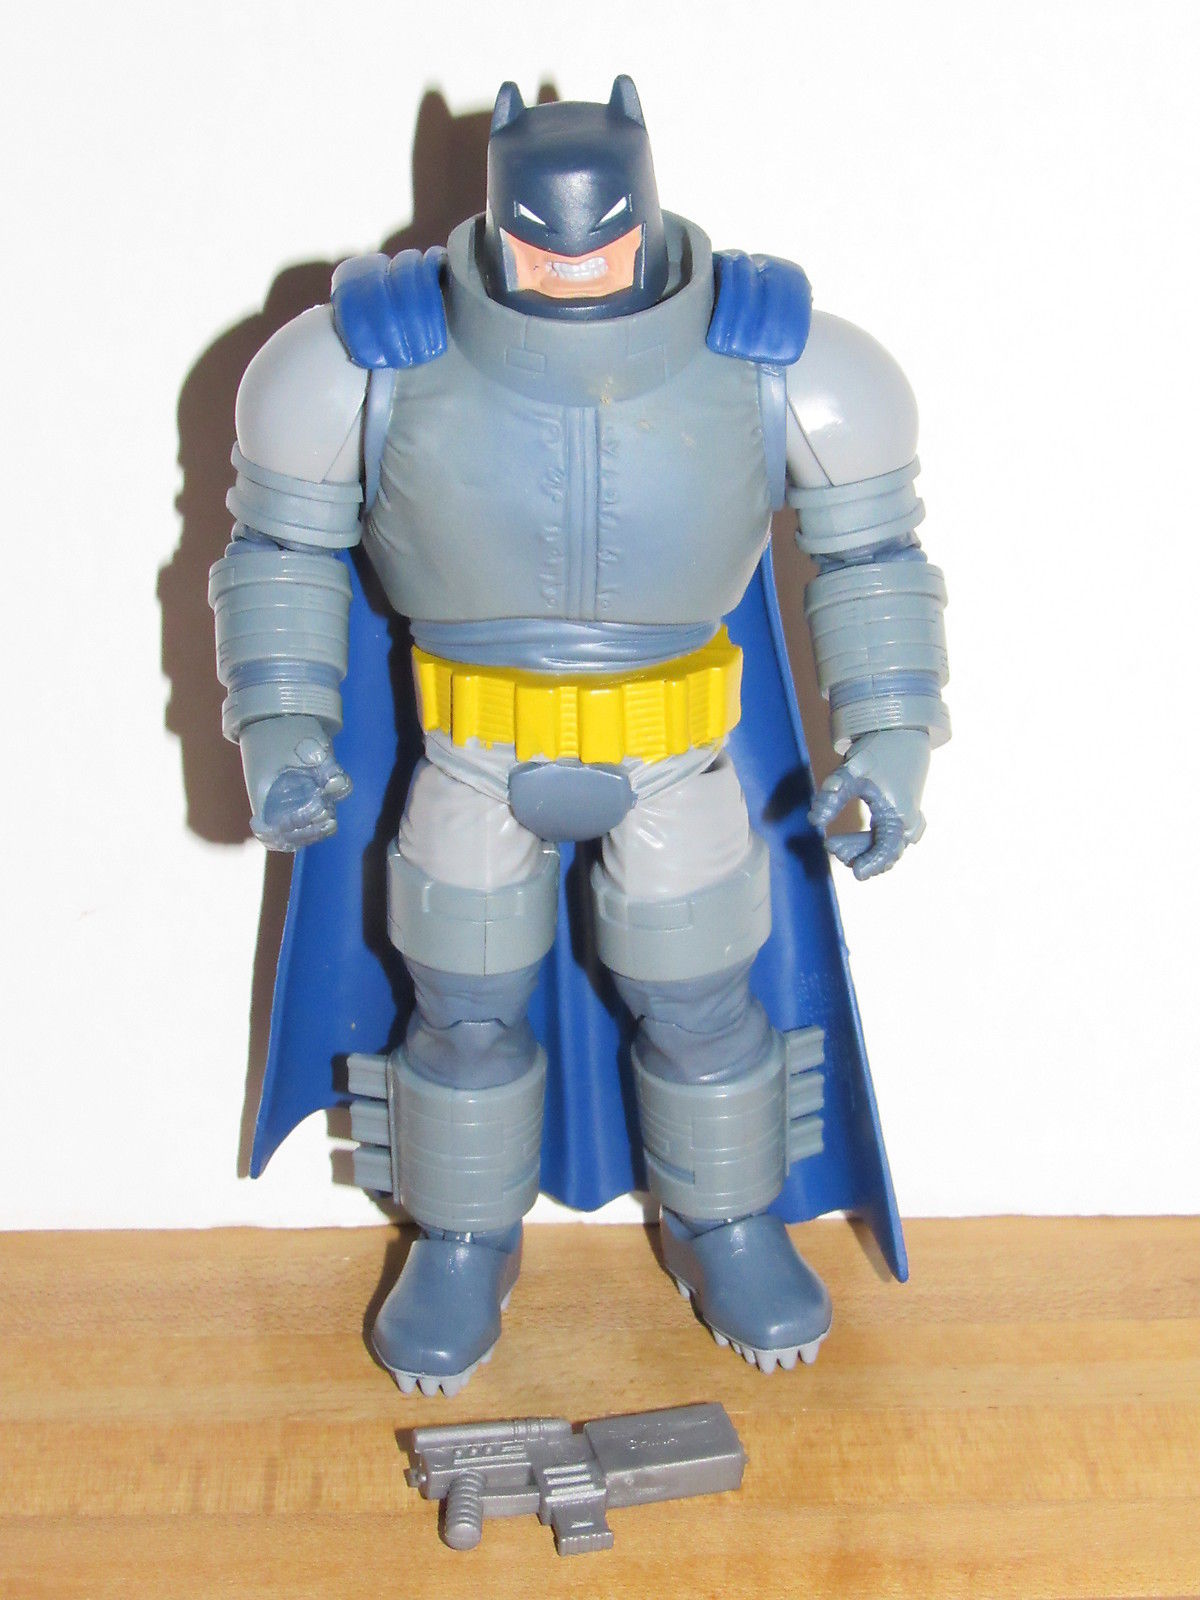 Mattel DC Comics Multiverse Dark Knight Returns Armored Batman